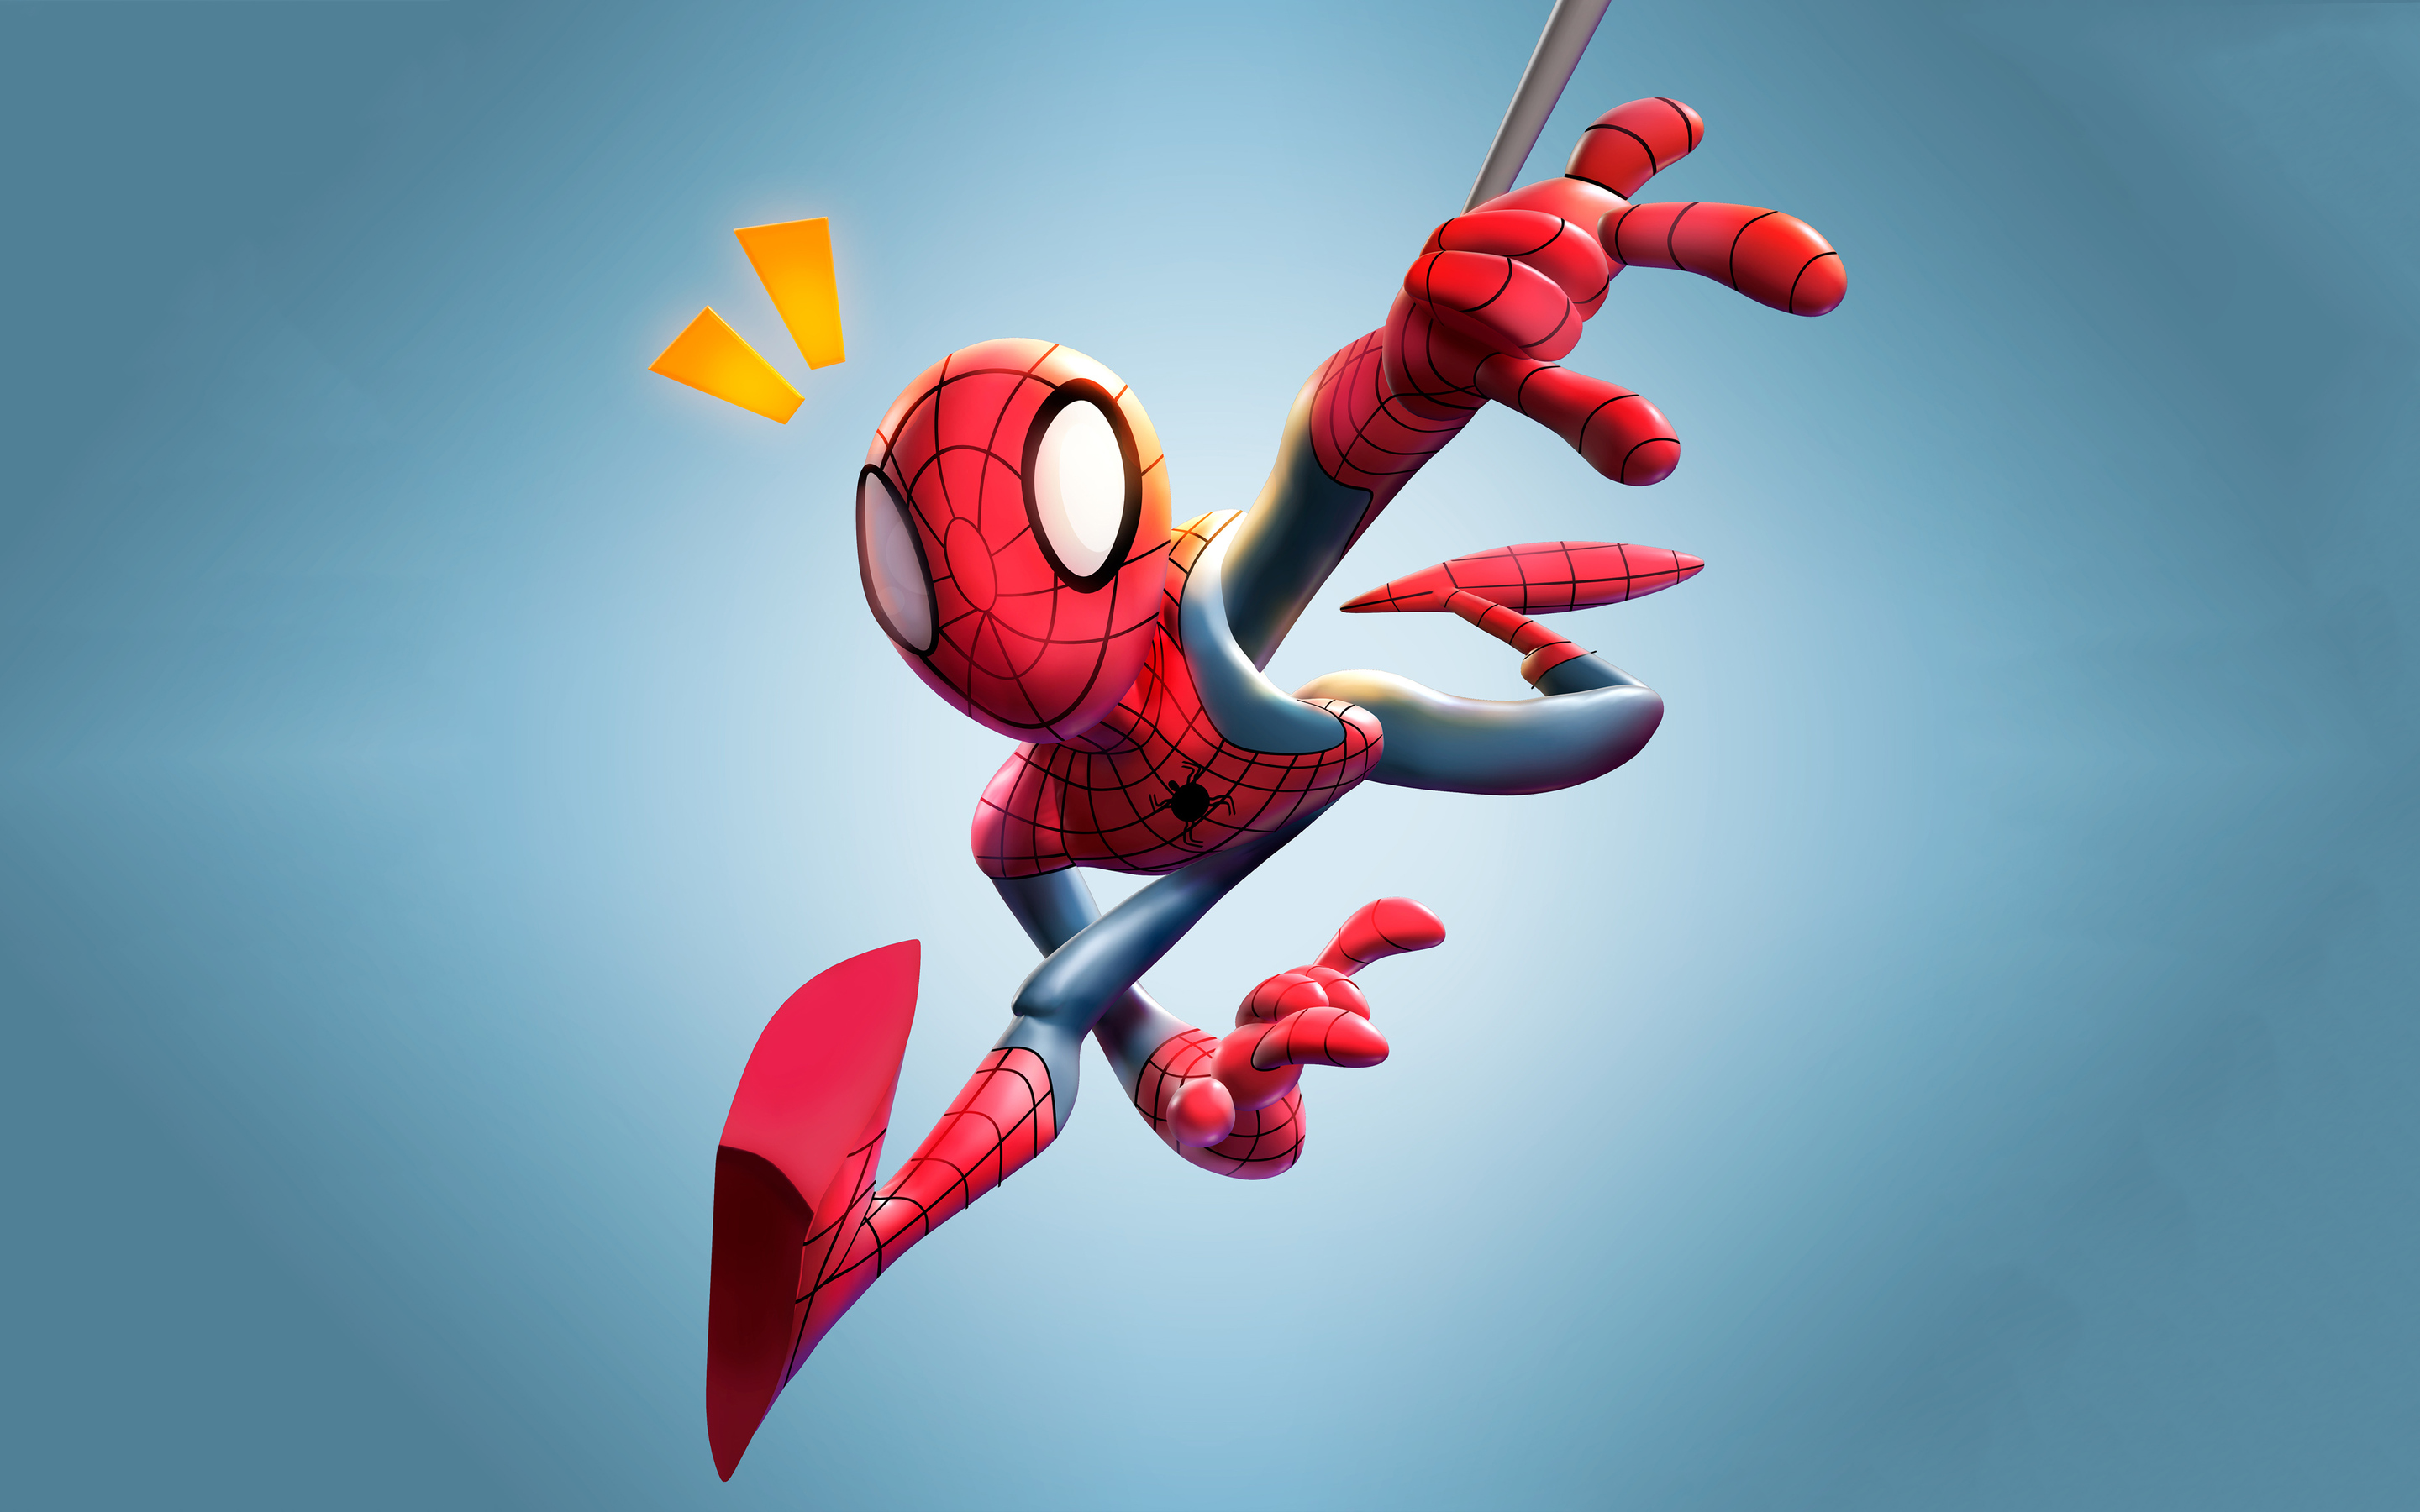 spiderman 3d fan art 4k xy